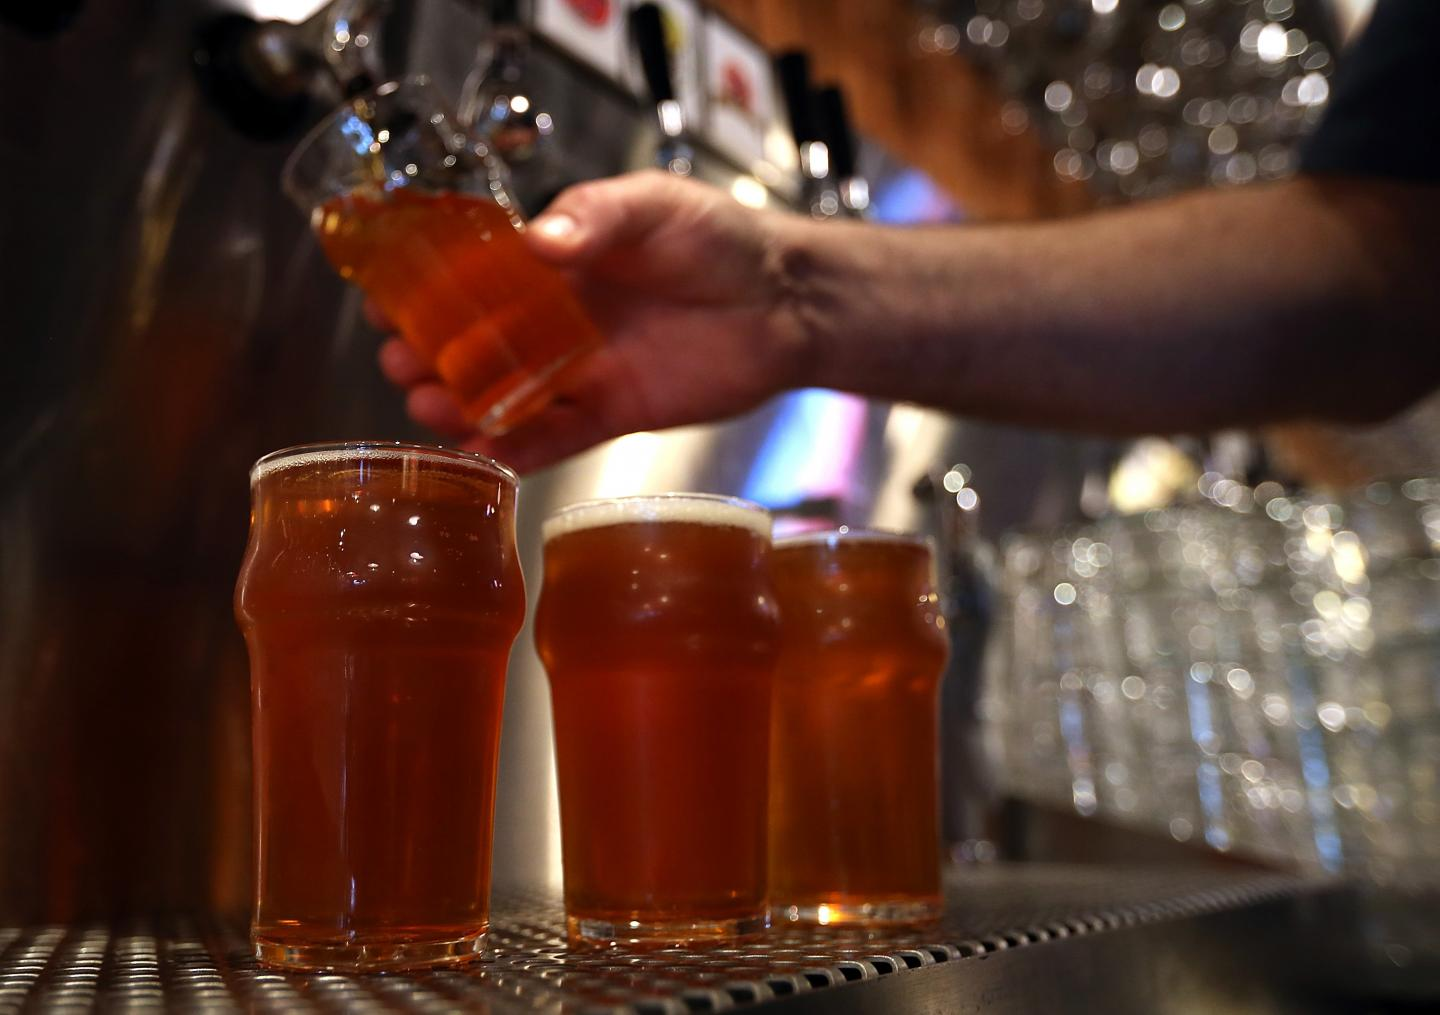 10 National Ipa Day Deals For Your Thursday Beer Fix photo